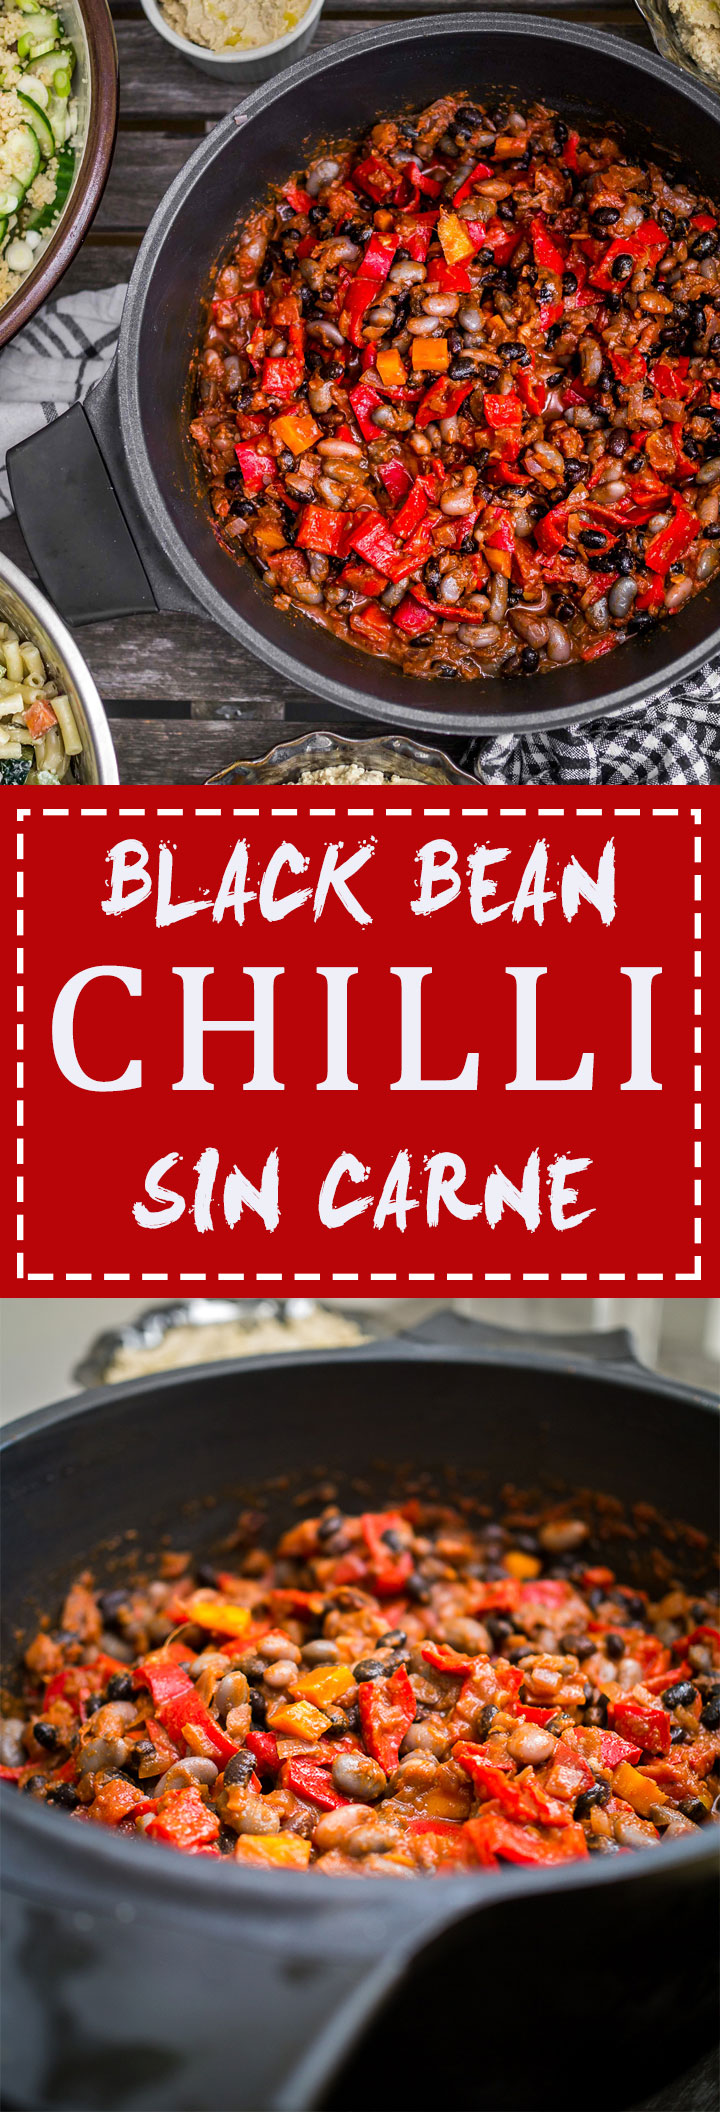 Black Bean Chili Sin Carne | Discover Delicious | www.discoverdelicious.org | Vegan food